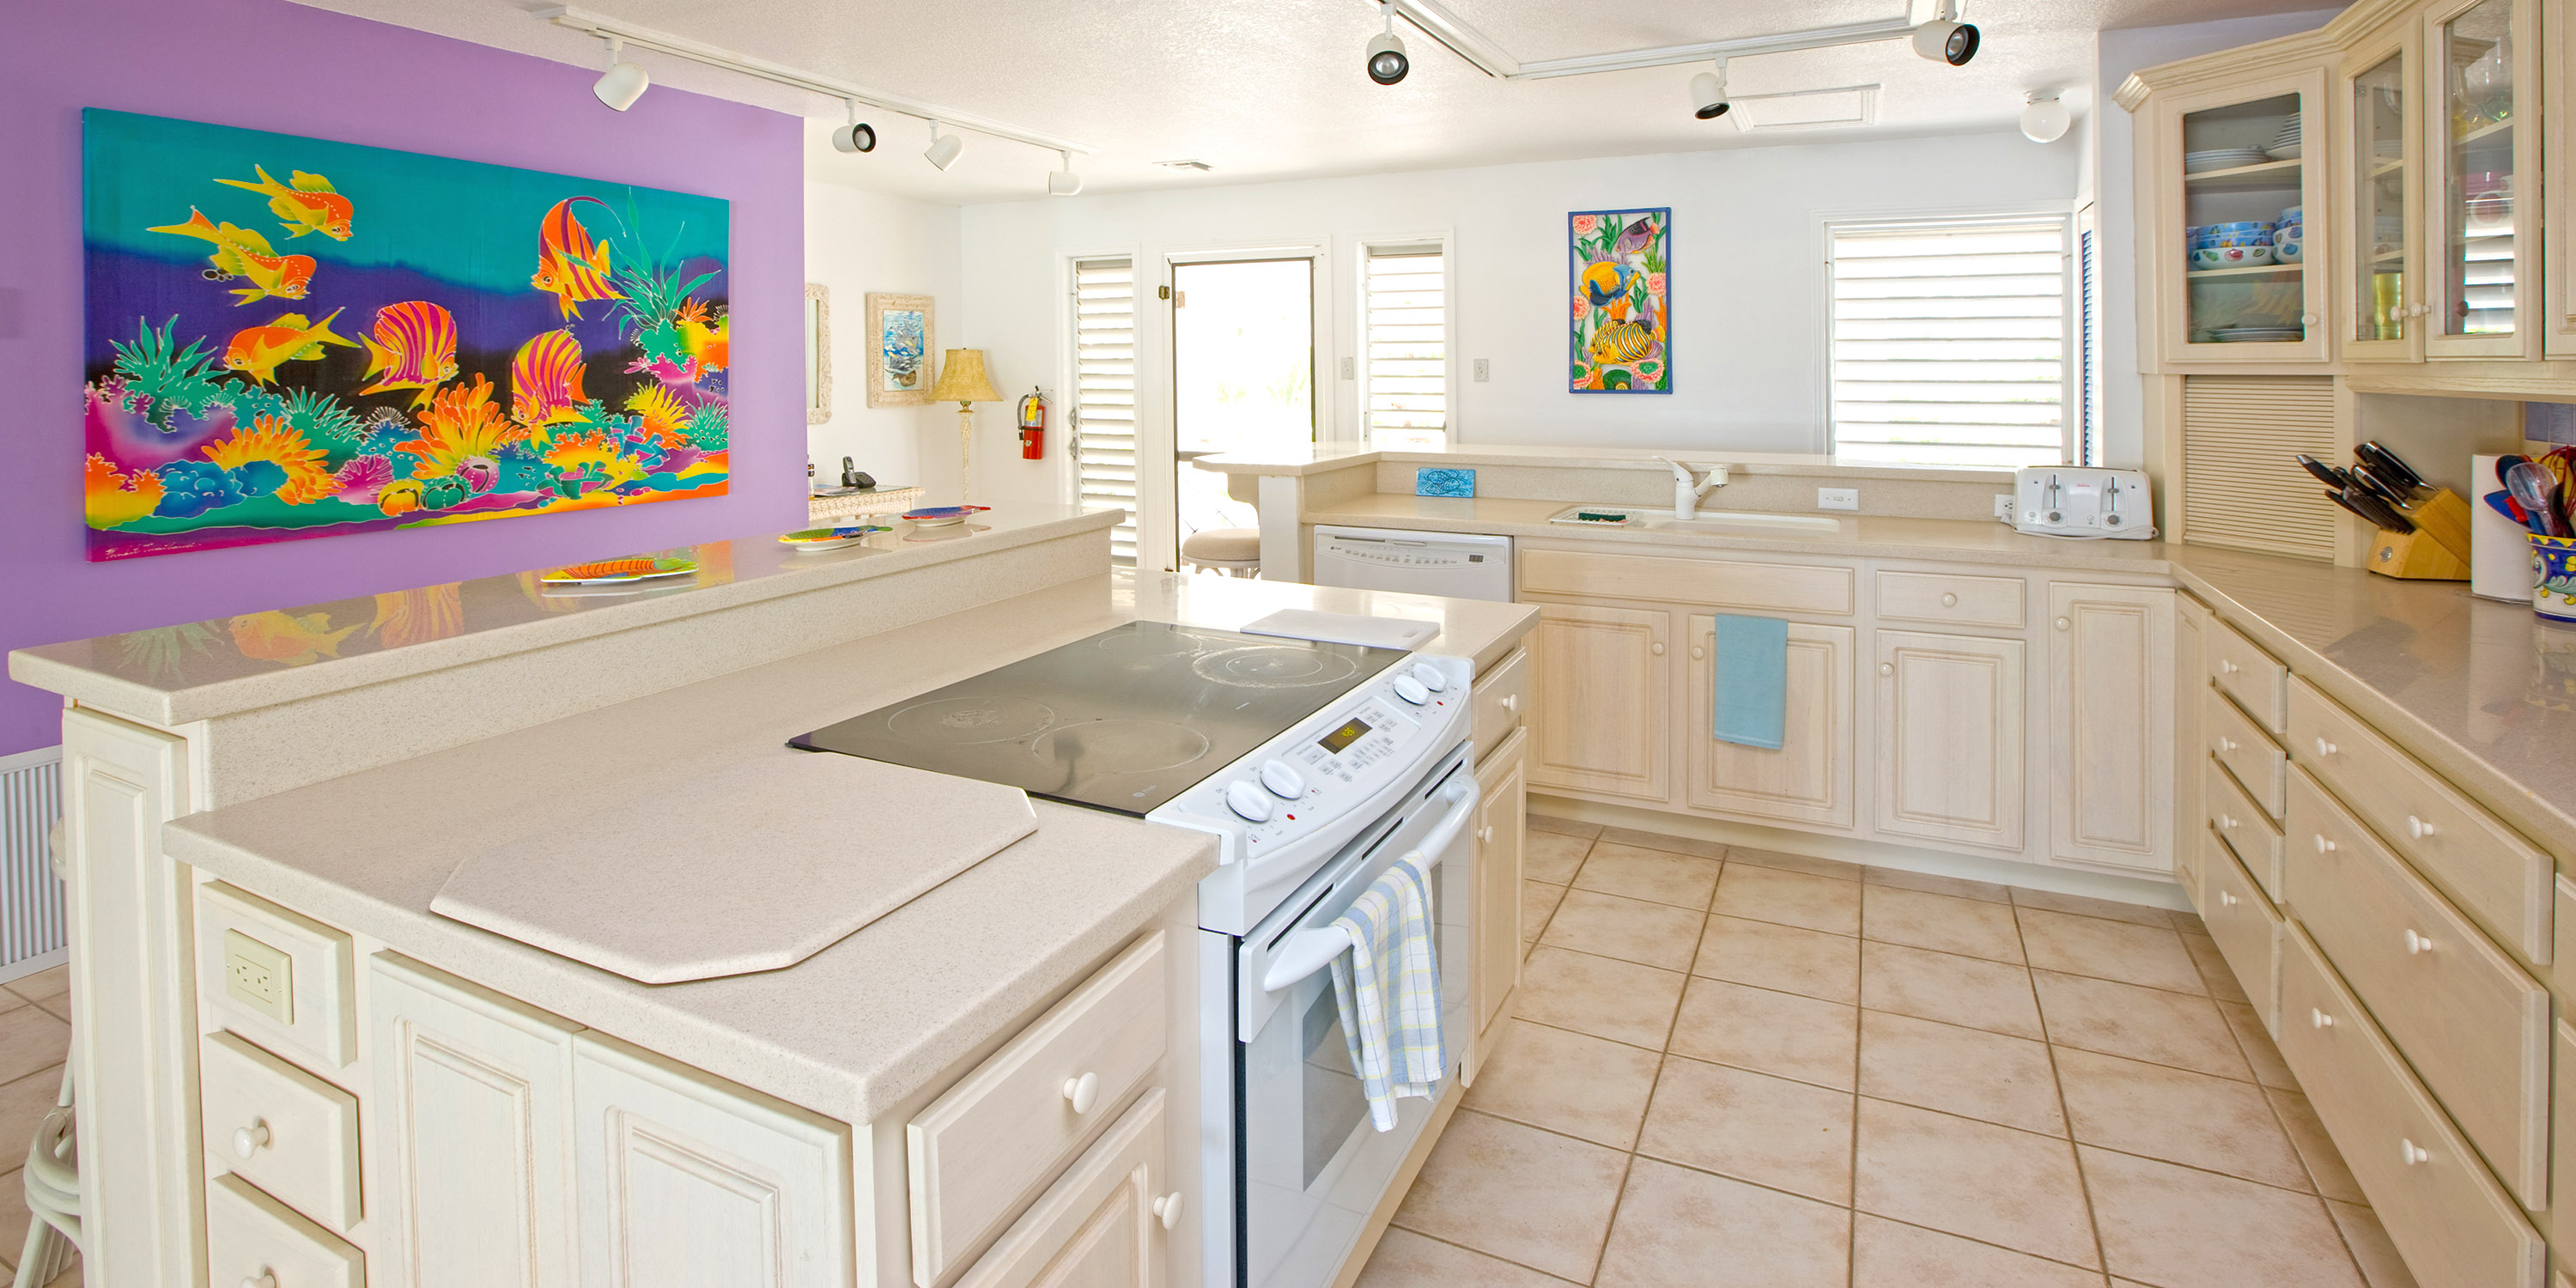 Halcyon Days Villa | Grand Cayman Villas & Condos | Grand Cayman ...